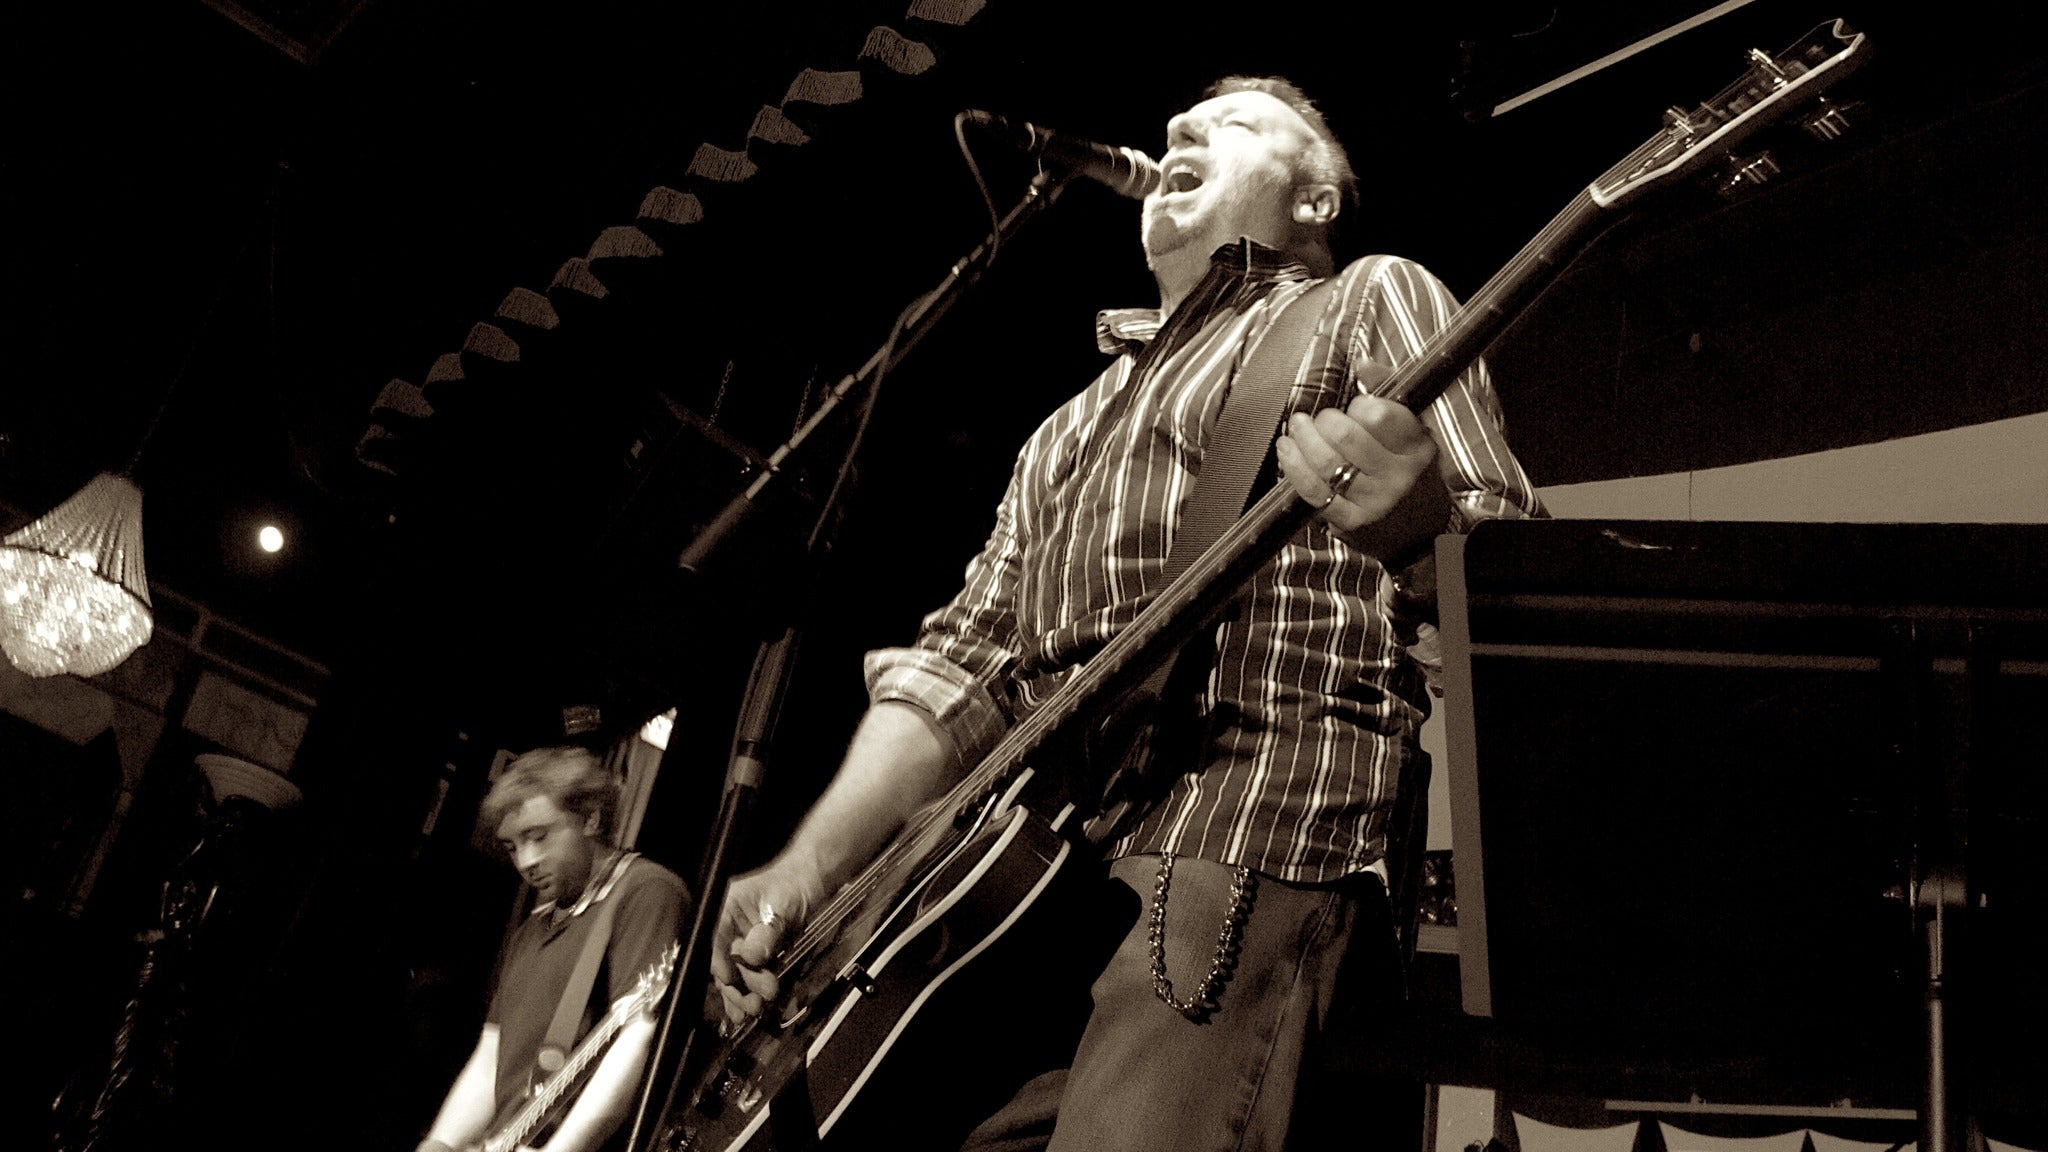 Peter Hook & The Light at The Wiltern